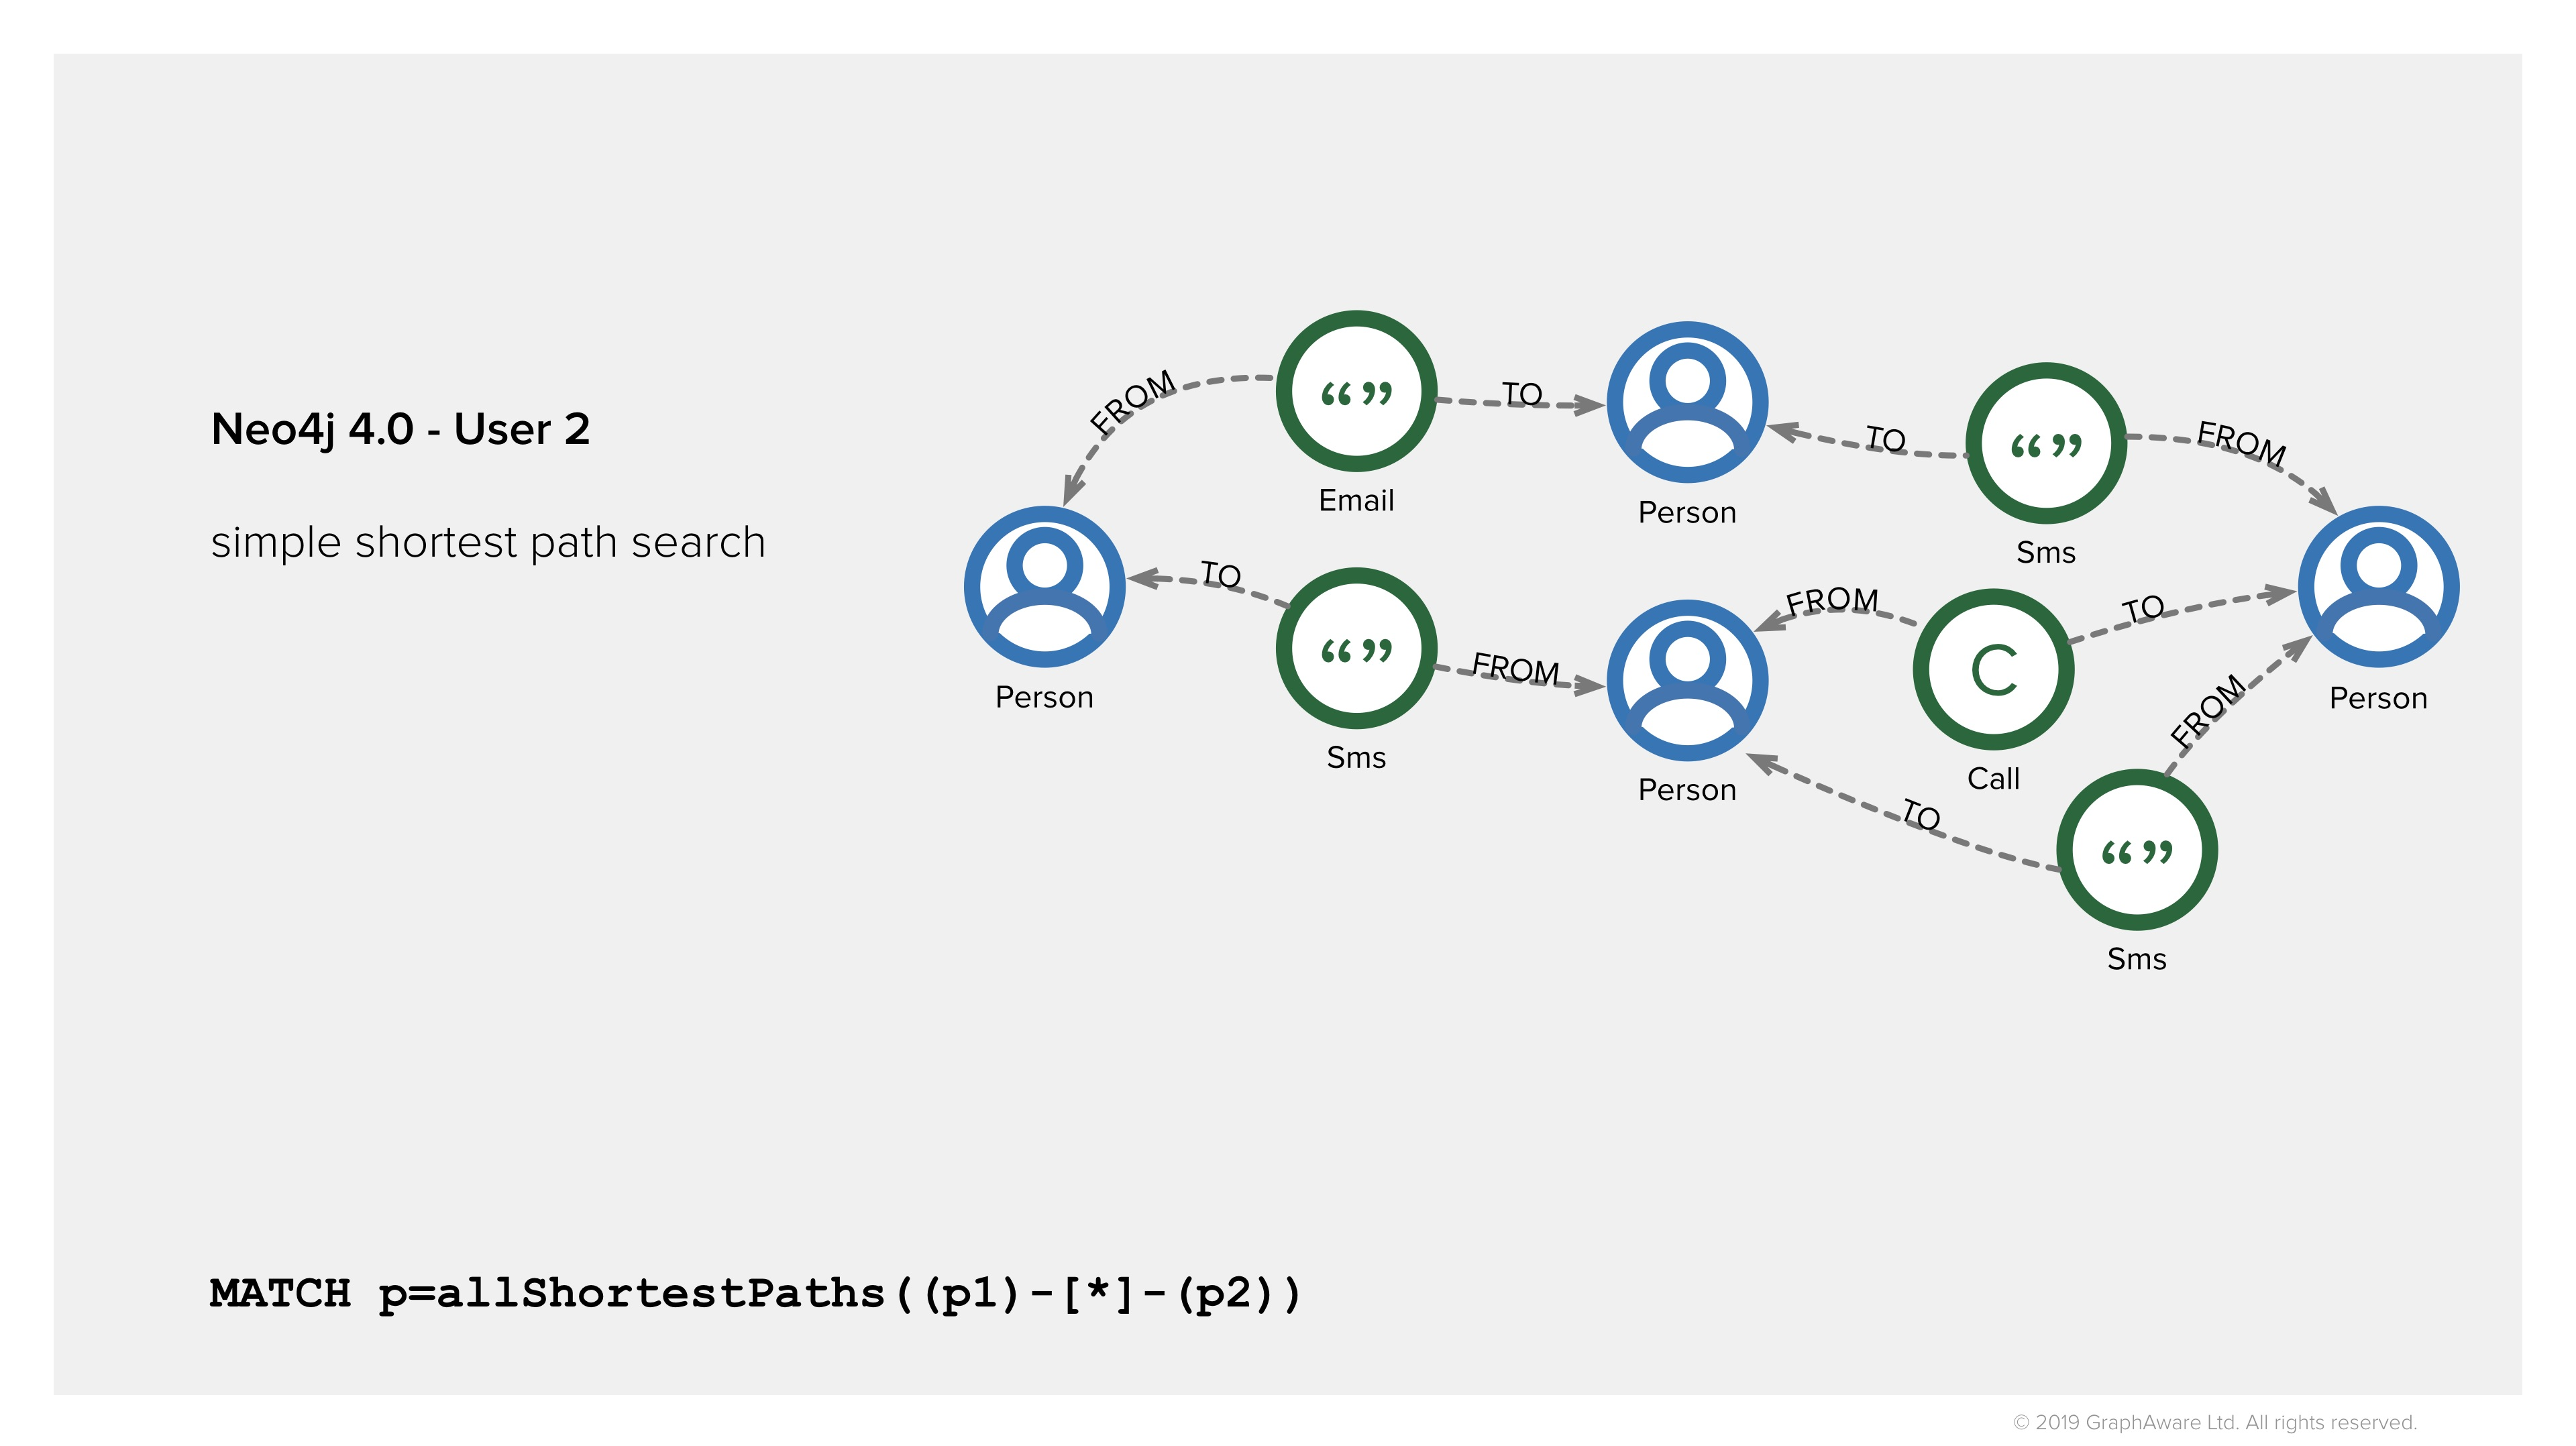 Find shortest paths in Neo4j 4.0 for law enforcement - access control